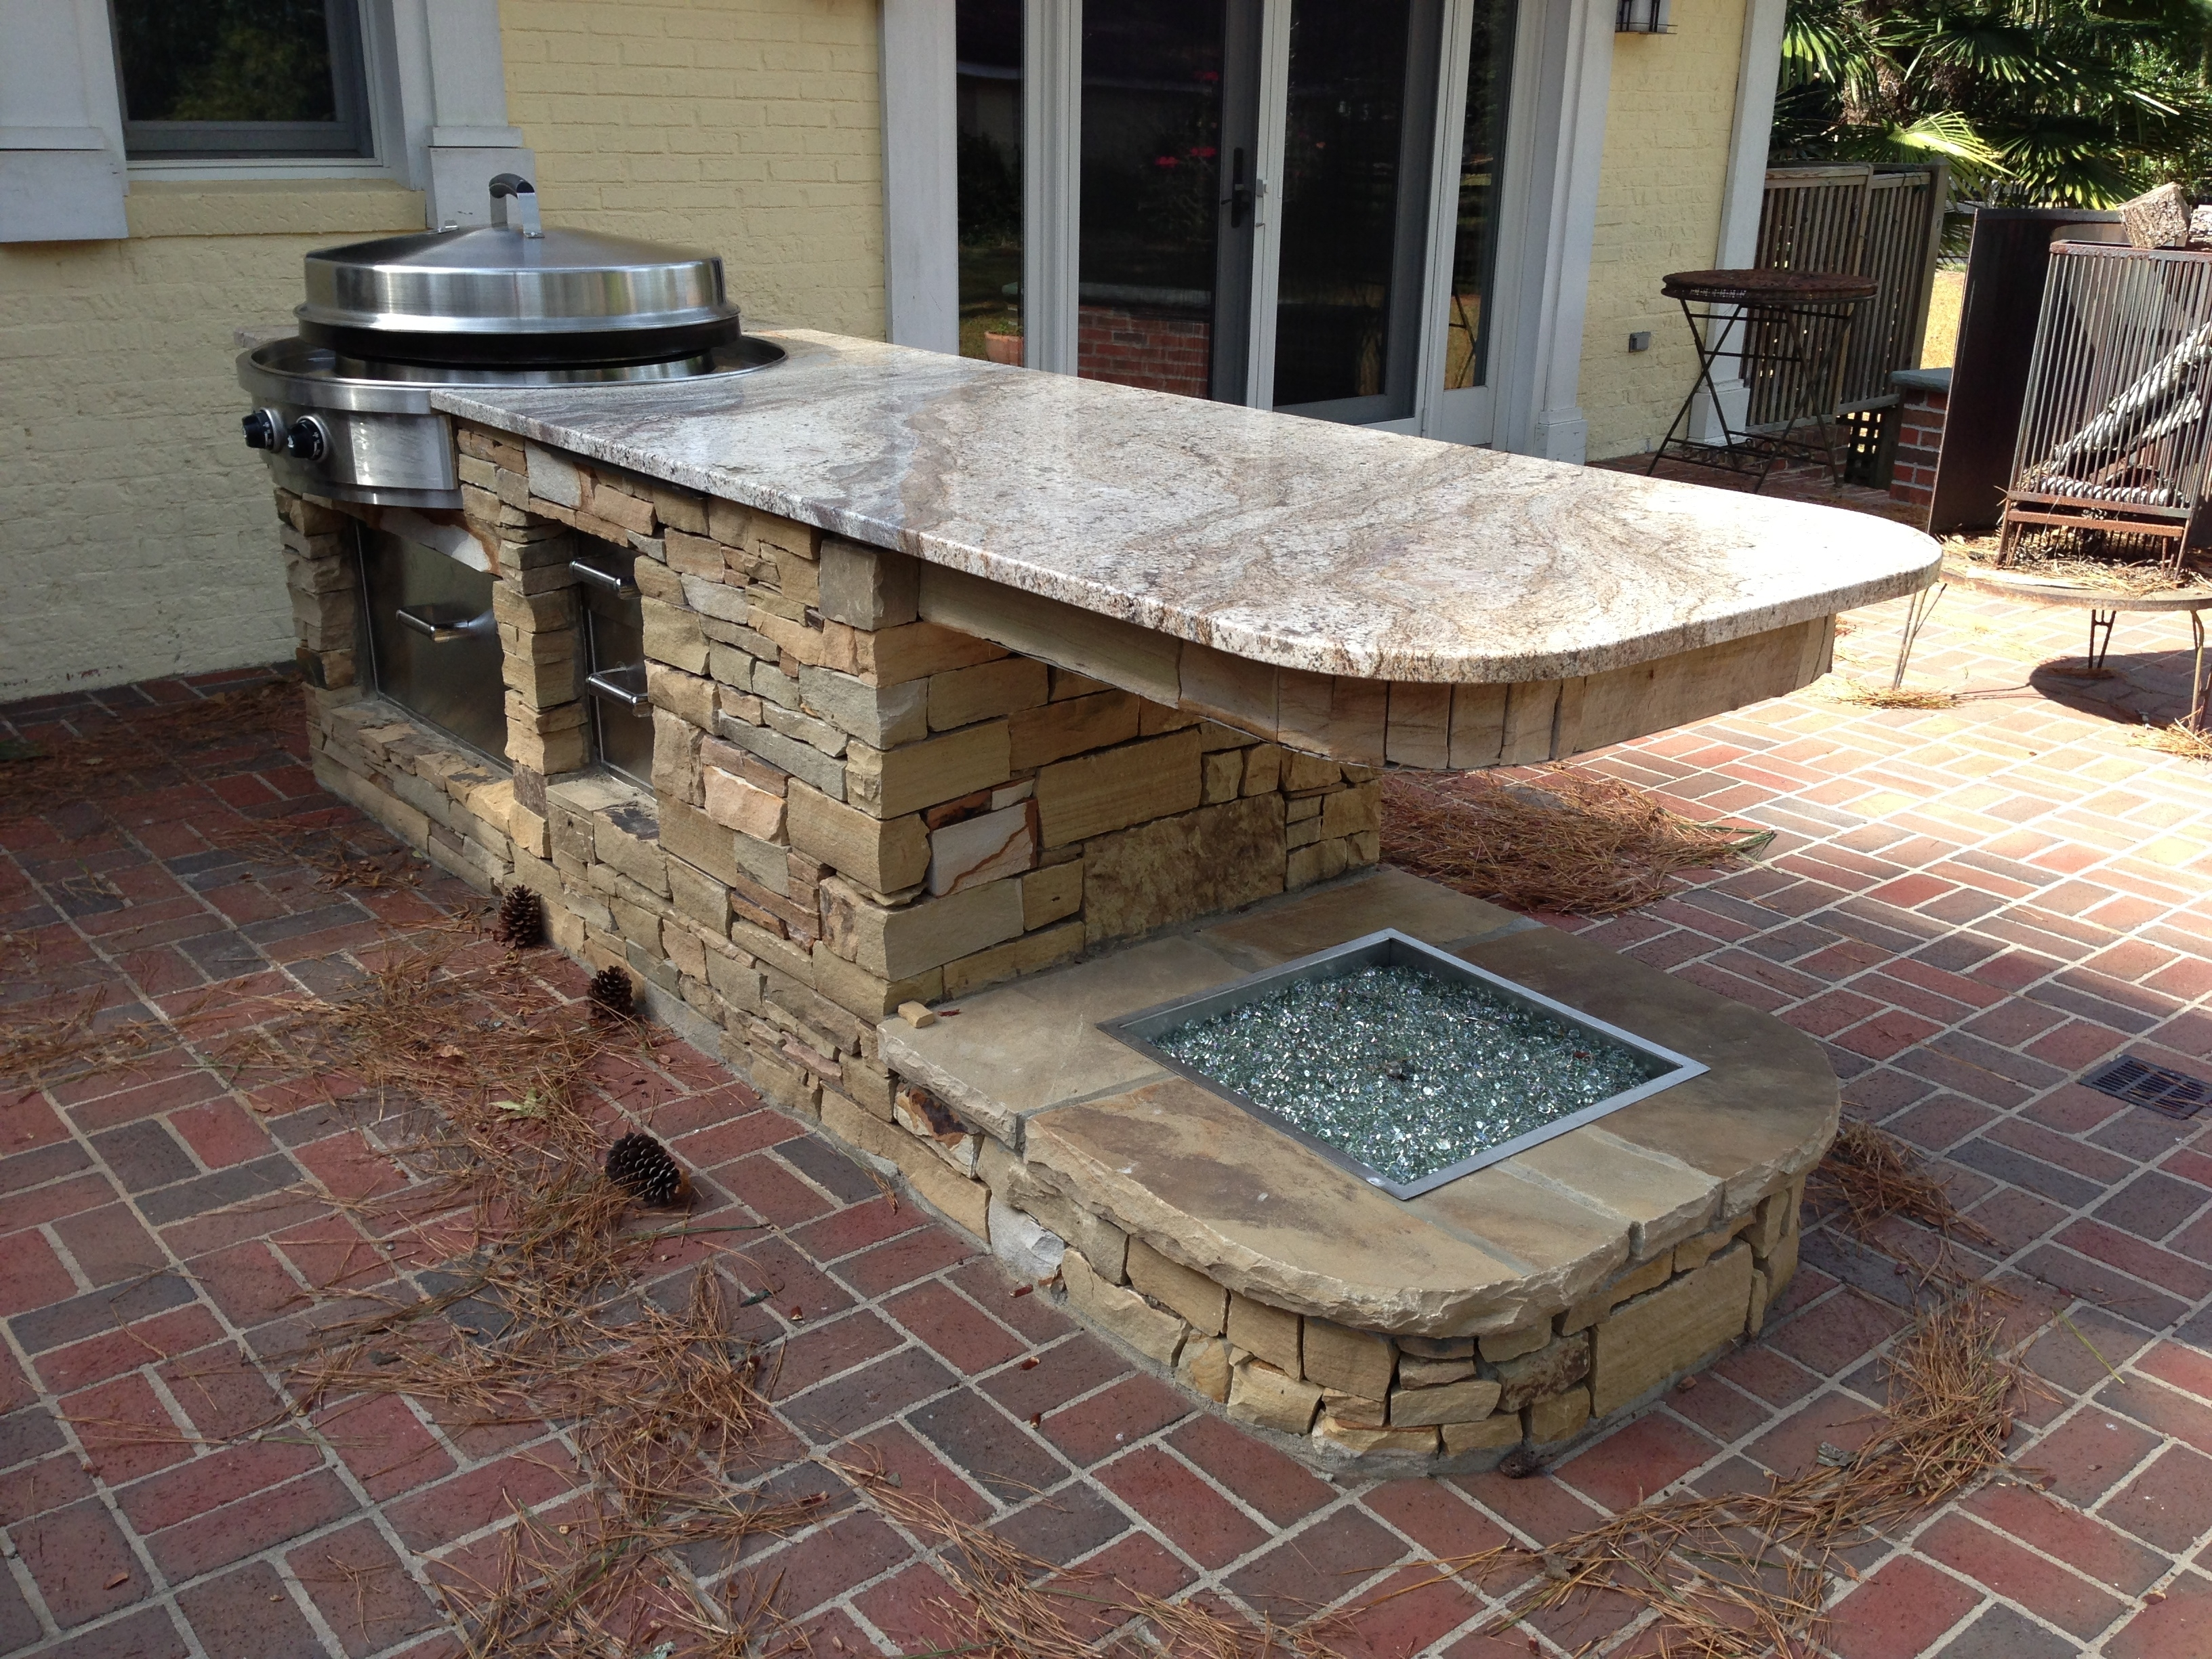 Image of: Outdoor Kitchen Granite Countertops Inspirations Also Cut Into Pertaining To Outdoor Kitchen Granite Countertops Outdoor Kitchen Granite Countertops Design